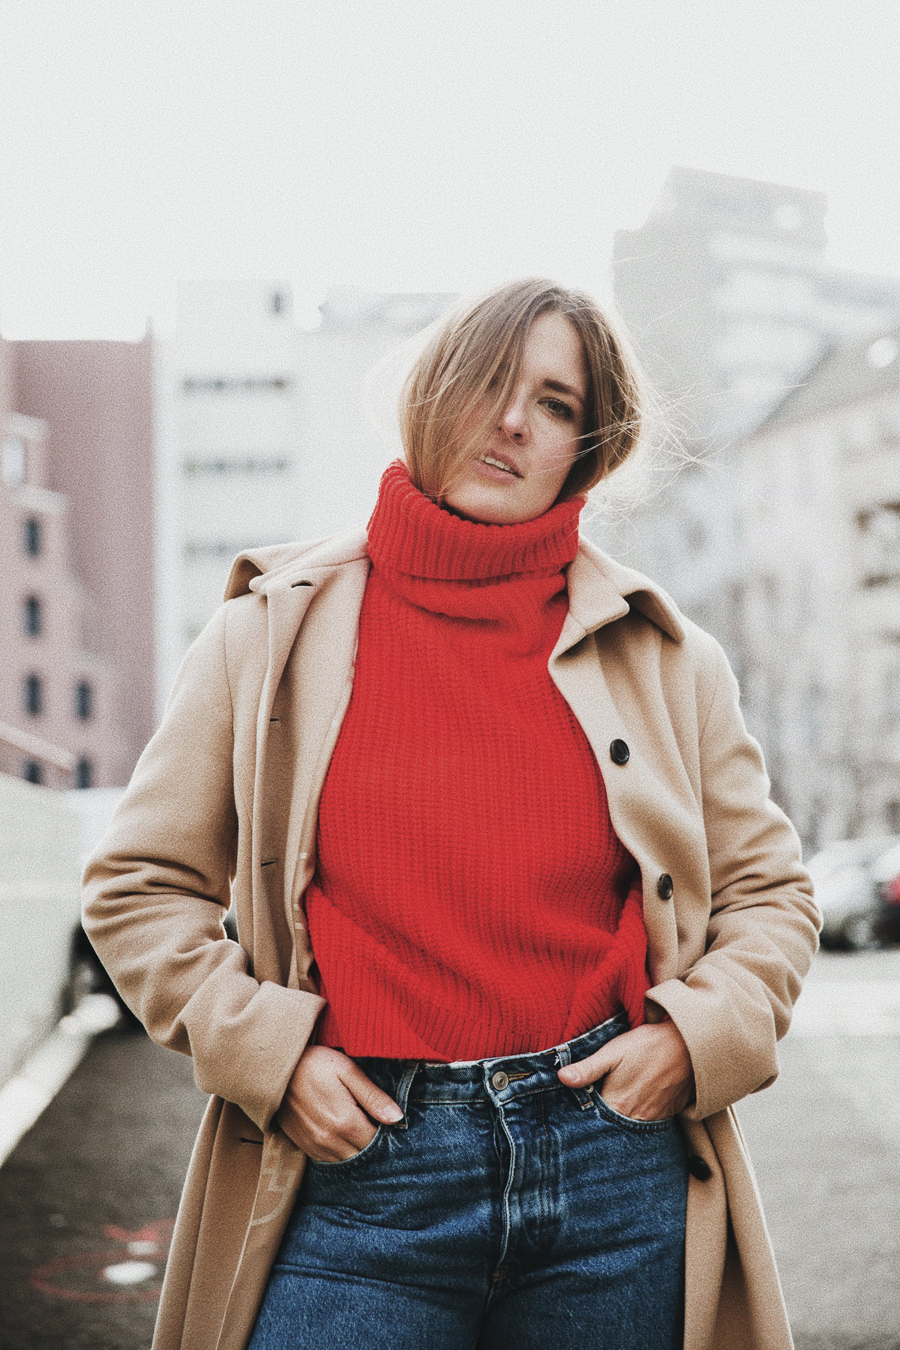 romina-mey-streetstyle-outfit-roter-pullover-portrait